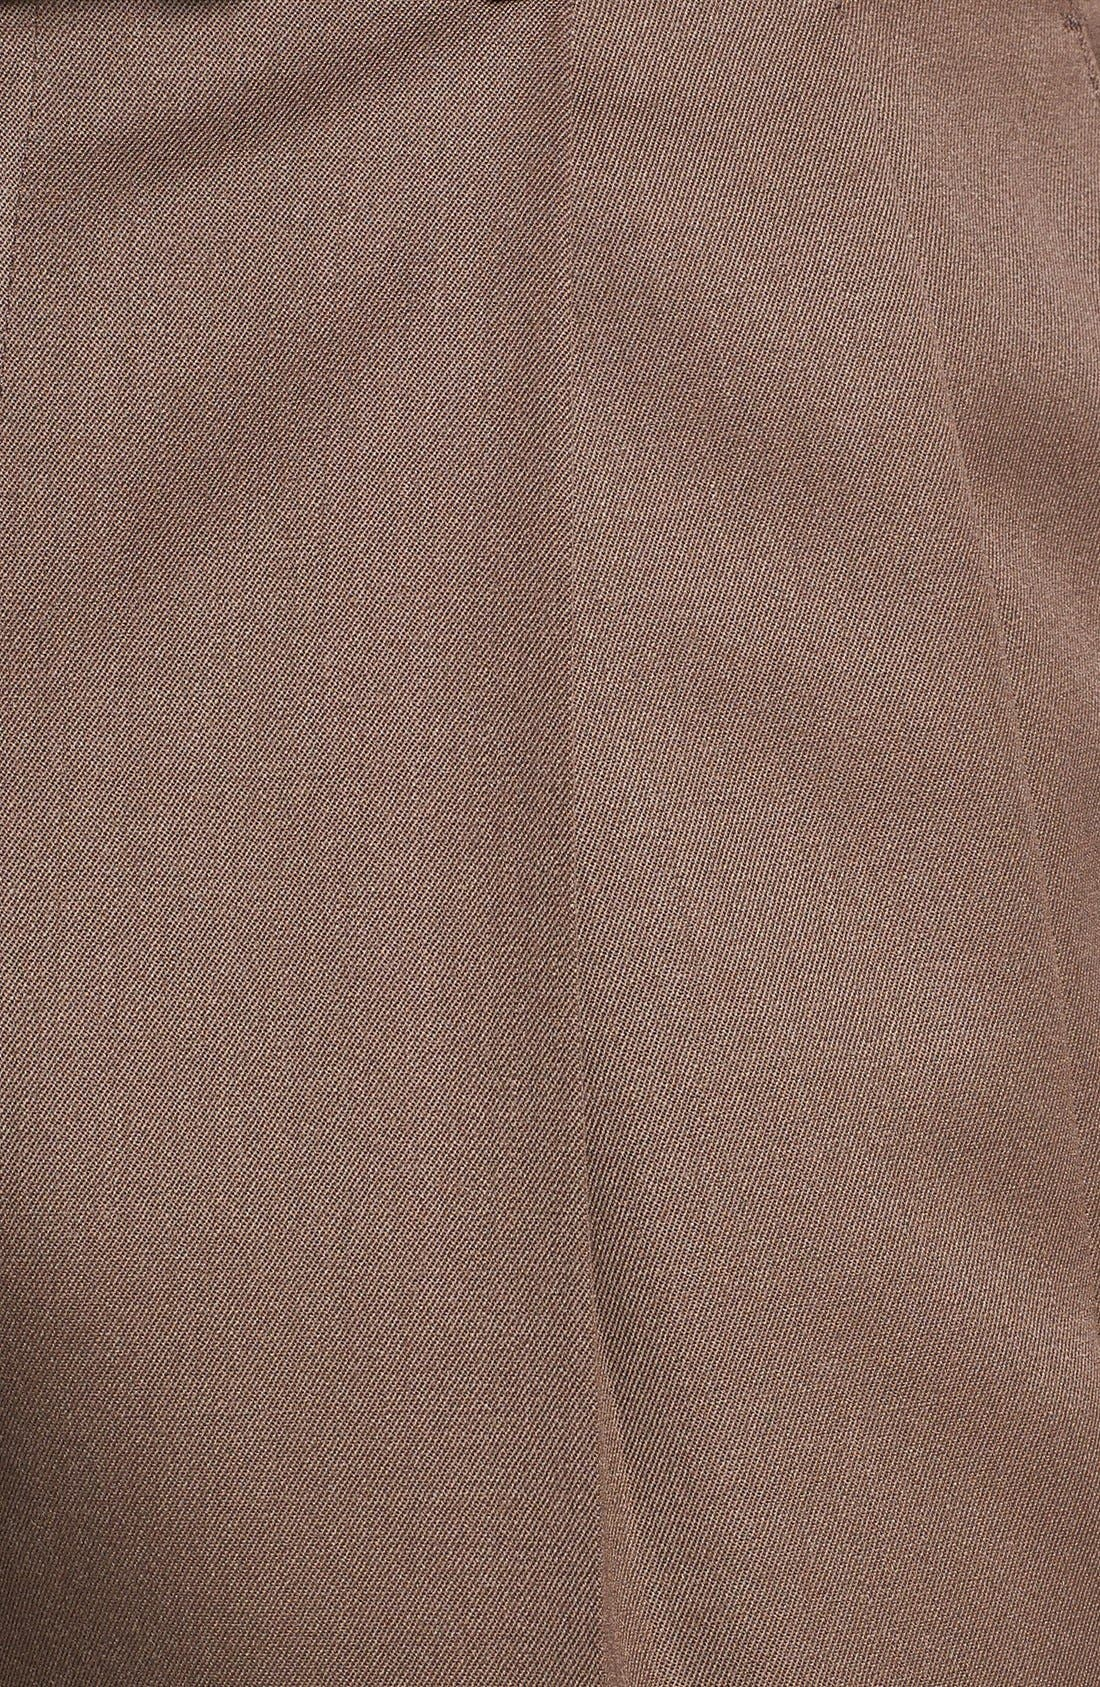 Pleated Super 100s Worsted Wool Trousers,                             Alternate thumbnail 19, color,